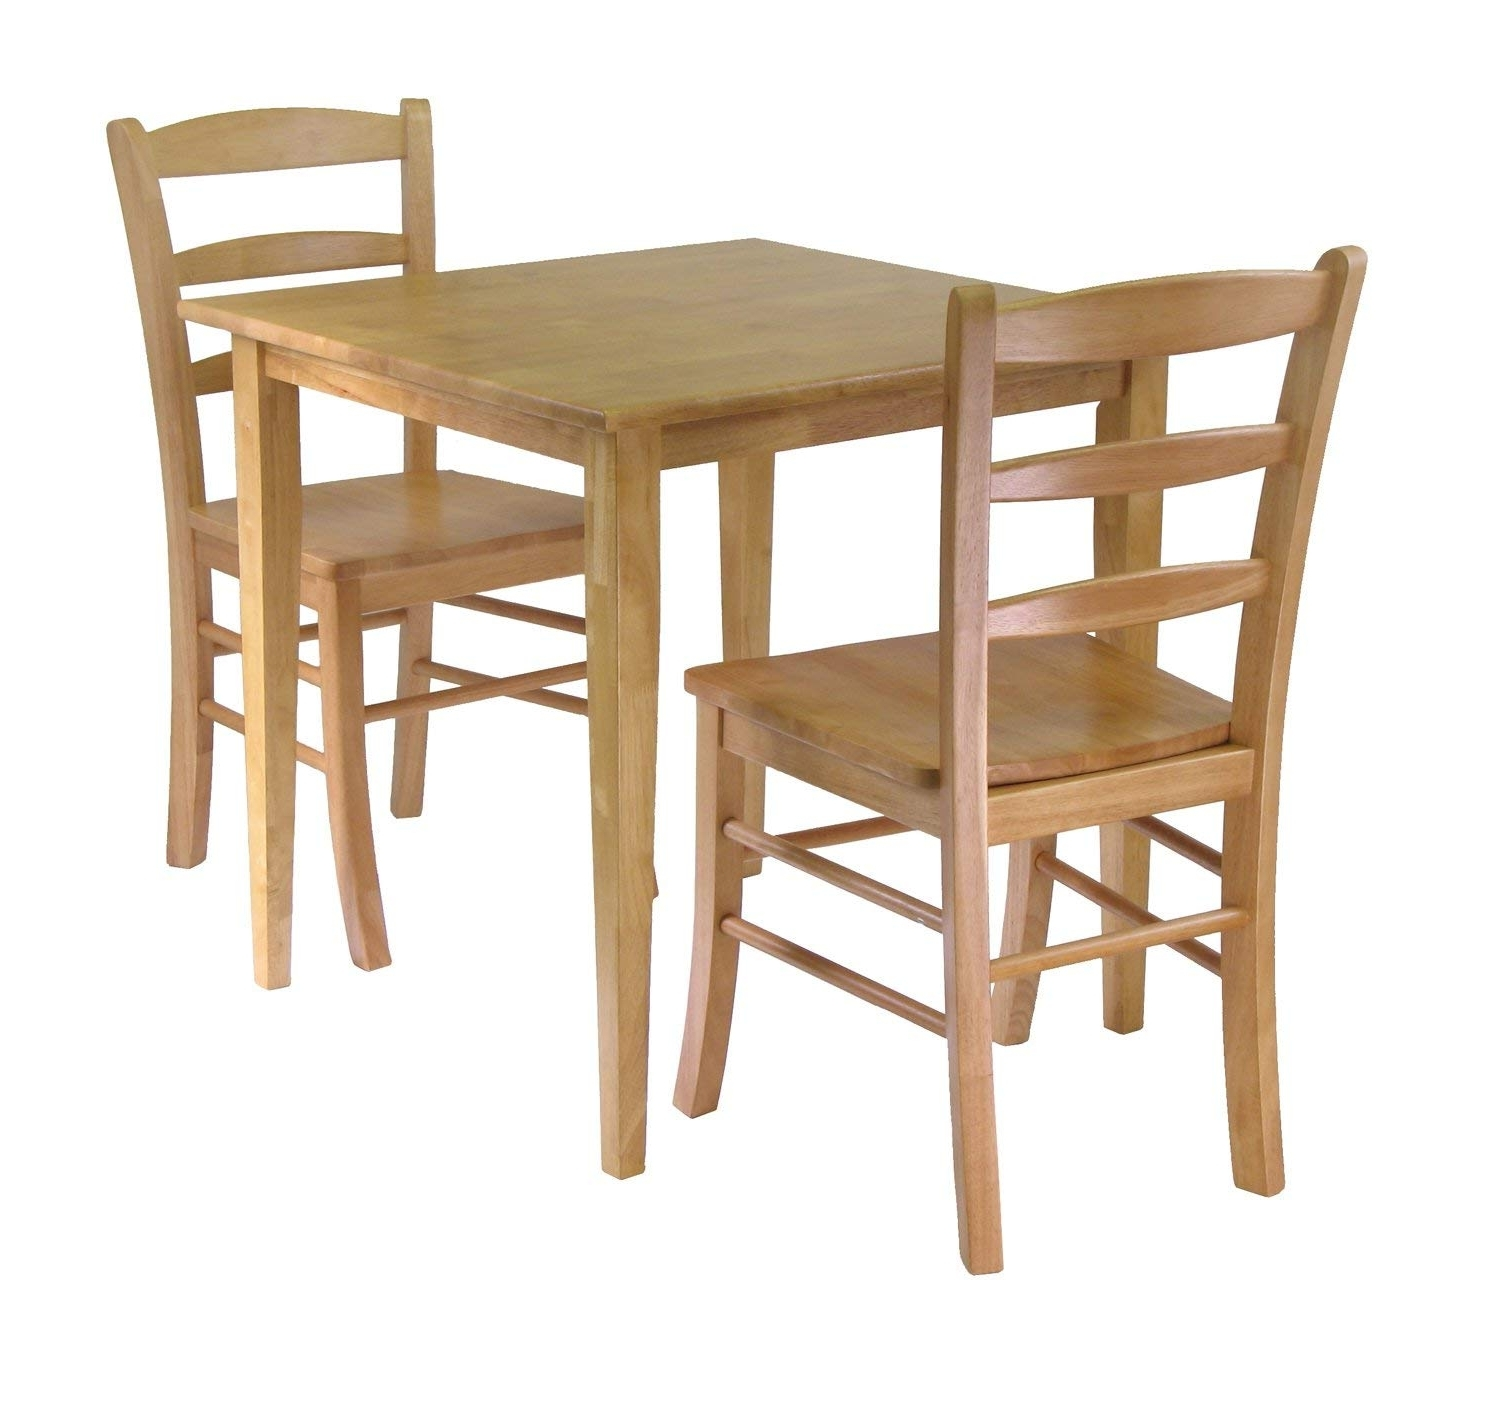 Kitchen Dining Sets Inside Latest Amazon – Winsome Groveland 3 Piece Wood Dining Set, Light Oak (View 15 of 25)